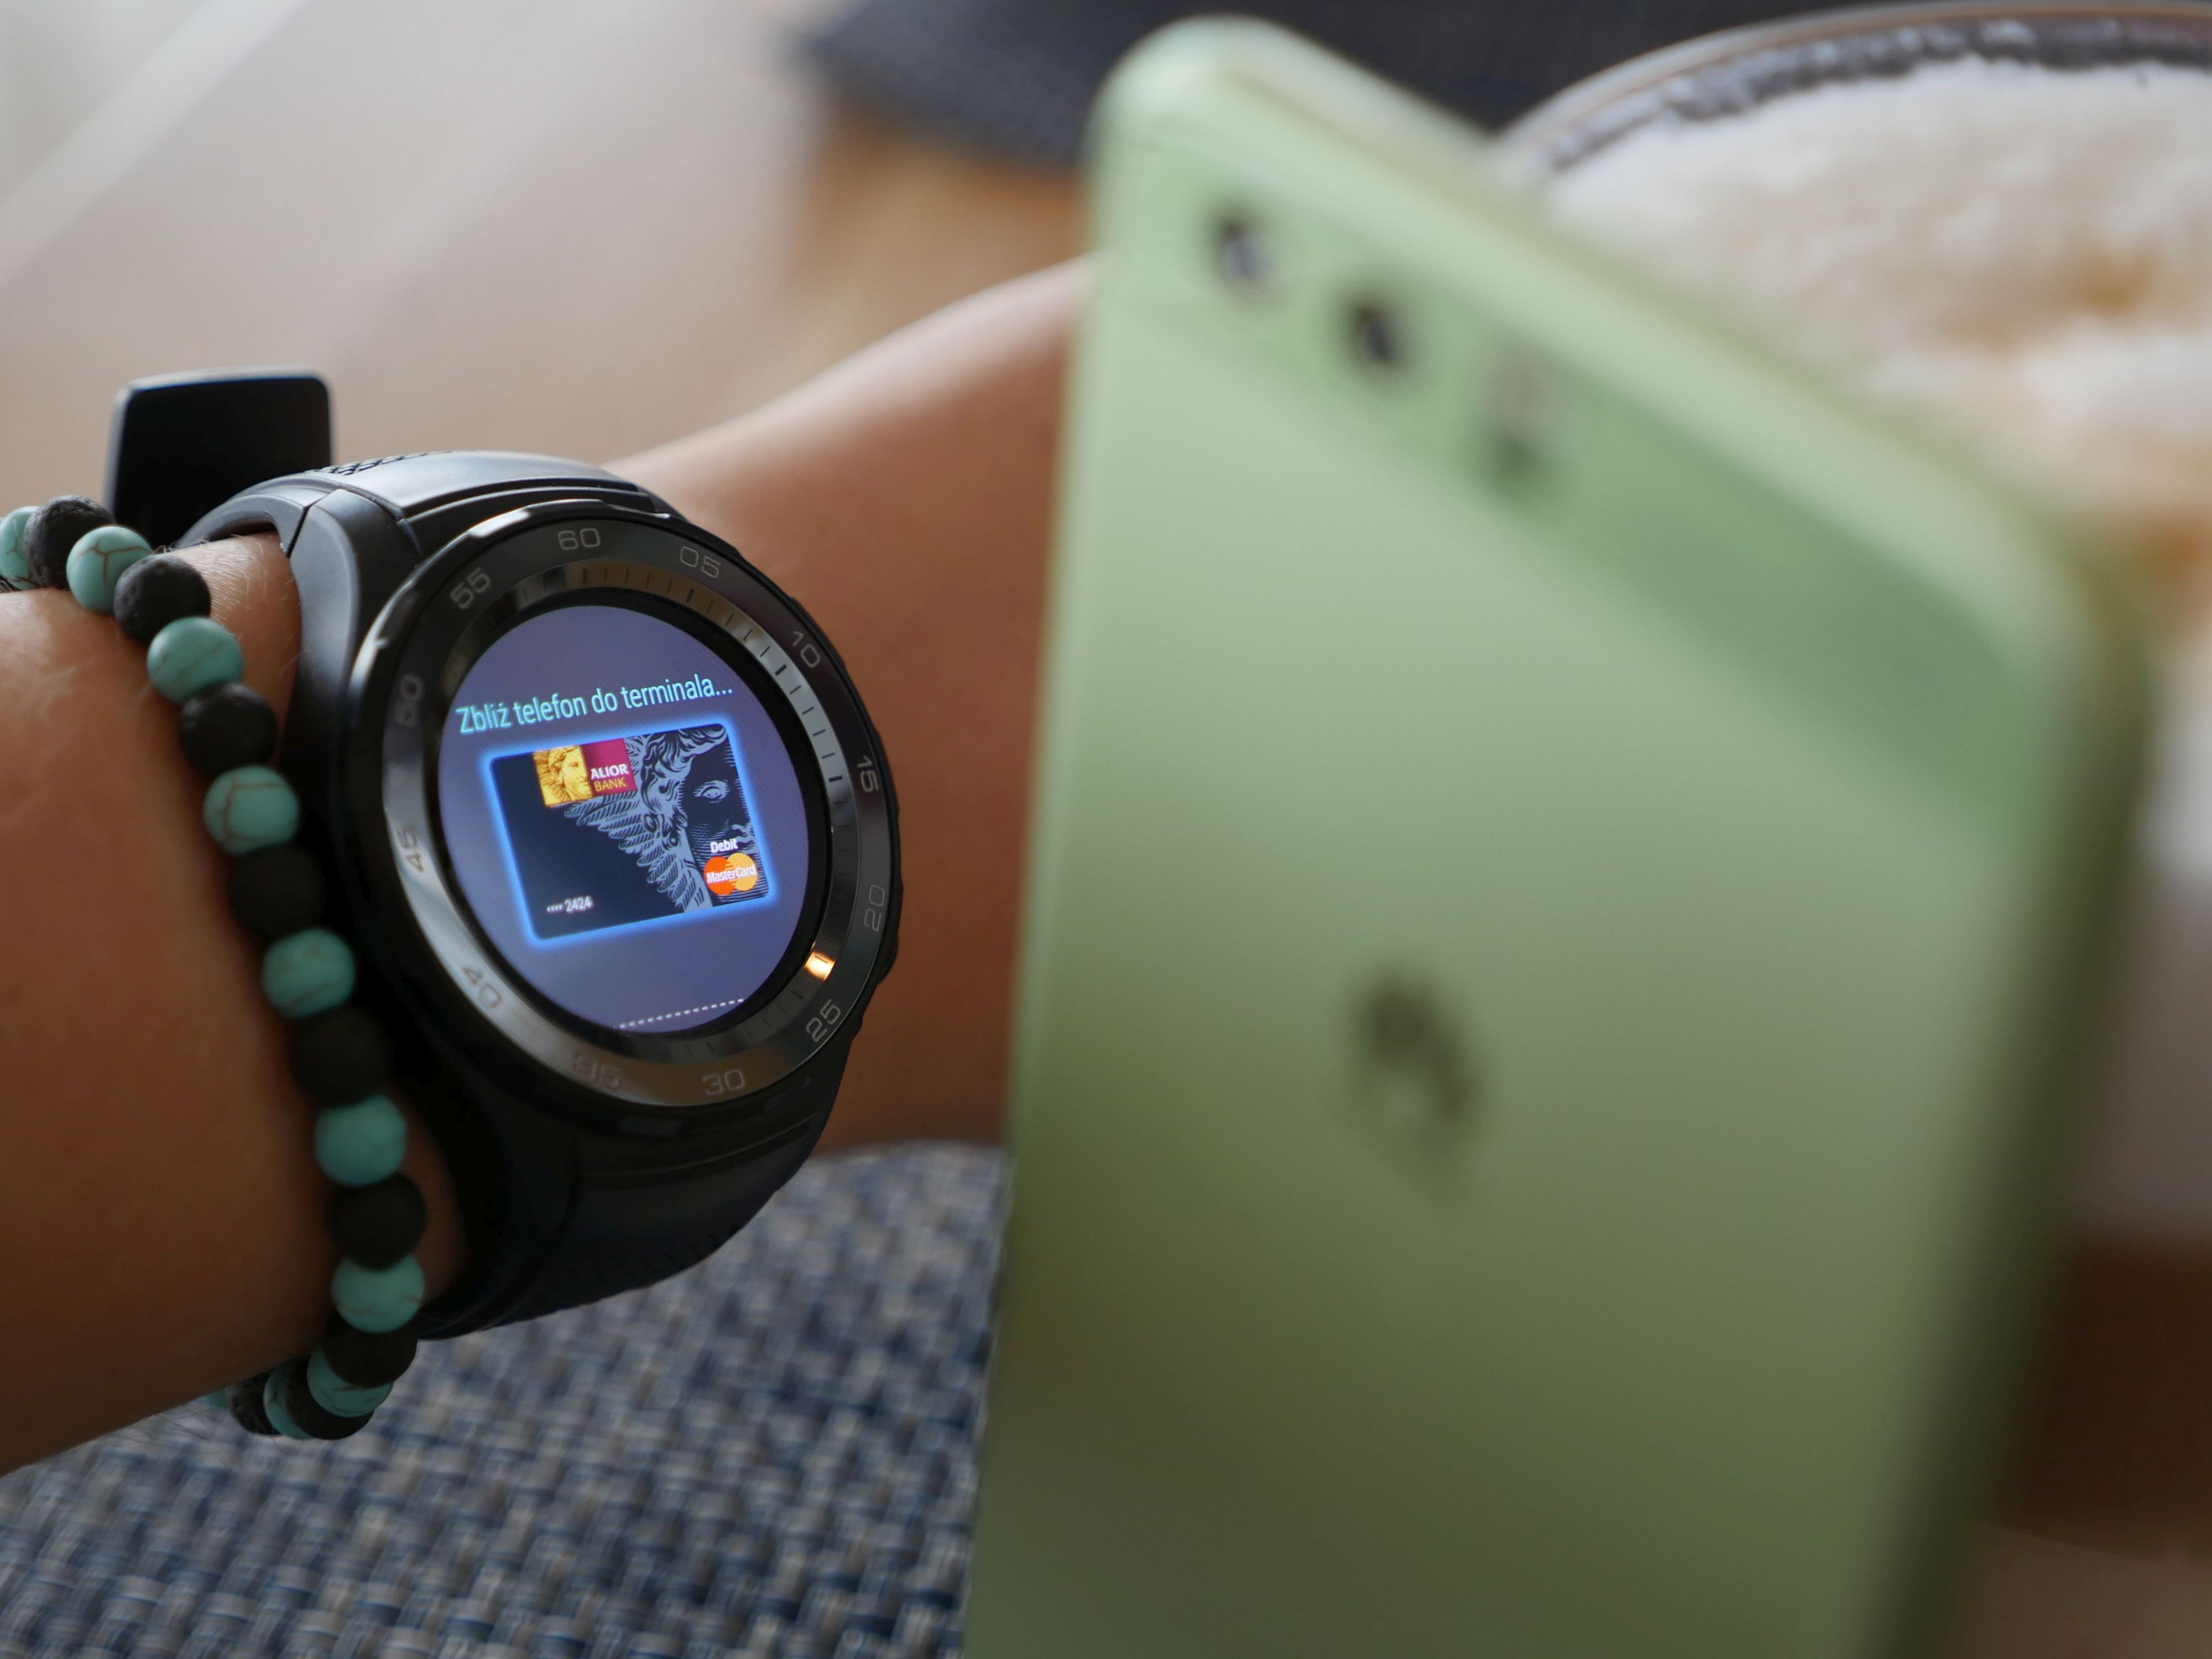 Tabletowo.pl Te smartwatche dostaną aktualizację do Wear OS. Są też informacje o Google Pay (Android Pay) na Huawei Watch 2 Google Huawei Wearable